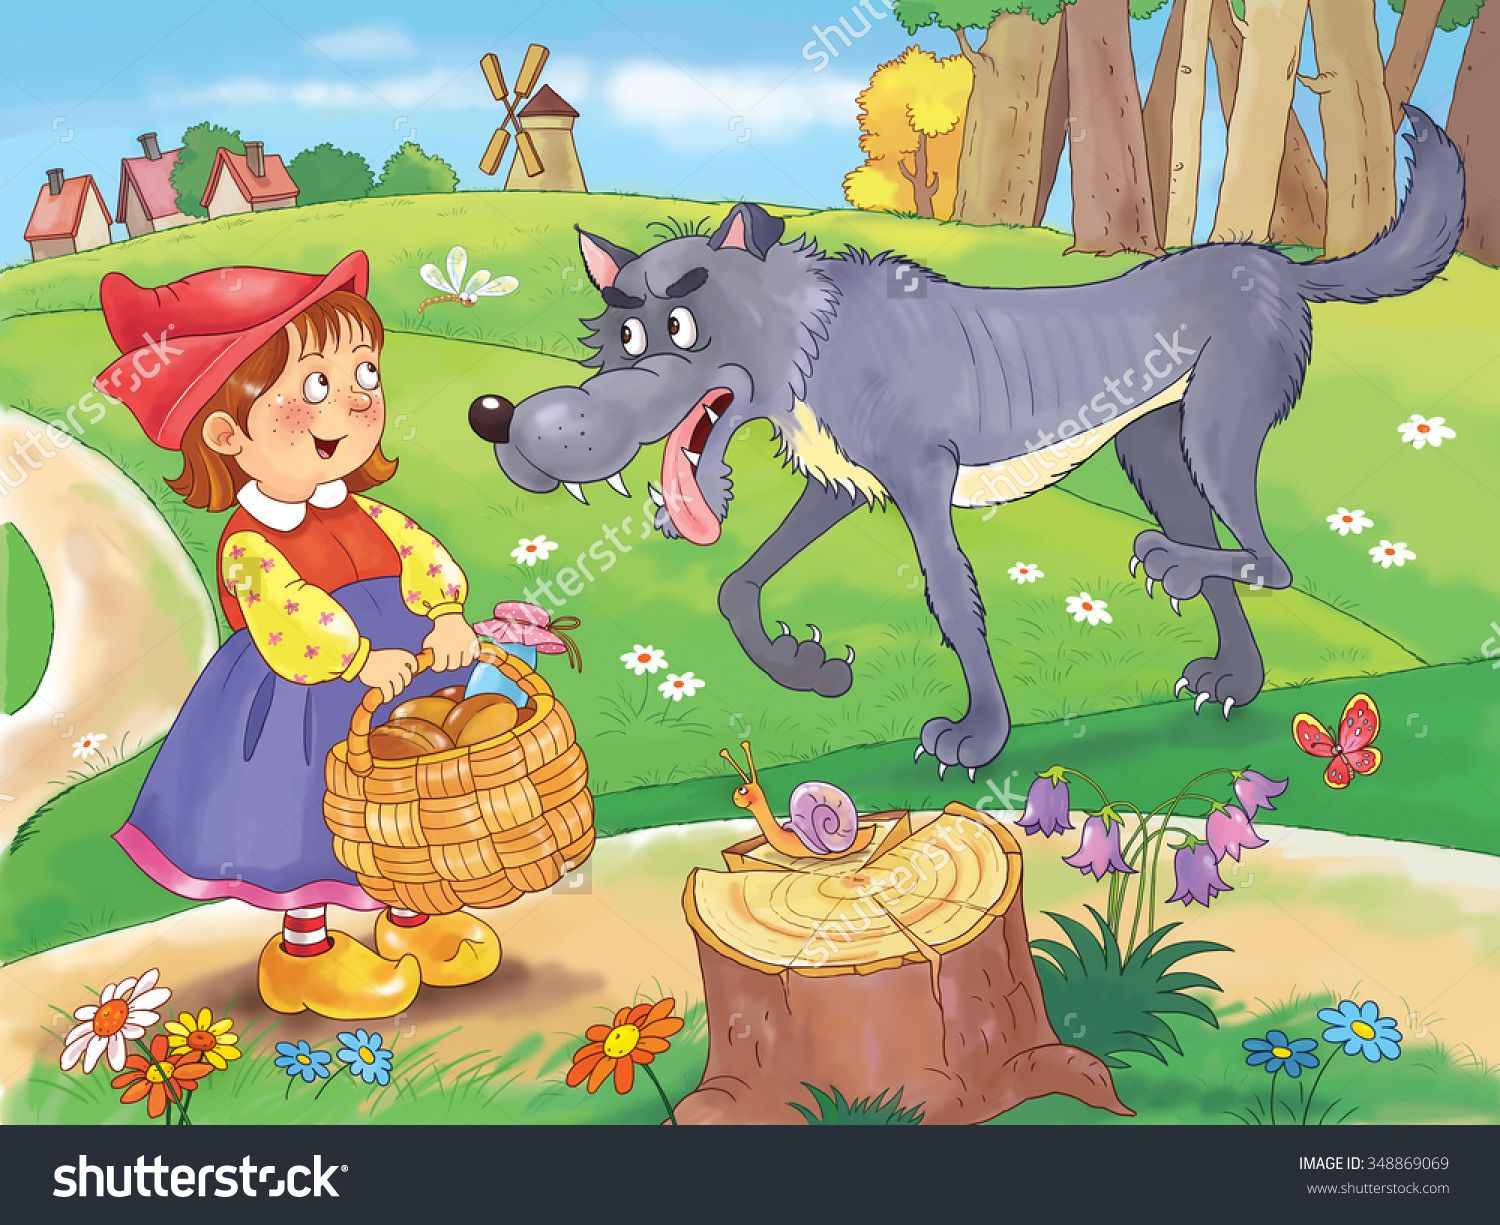 Little Red Riding Hood. Fairy tale. A cute girl with a basket full of food is talking to a big wolf on the road to her grandmother's house. Illustration for children. Cartoon character